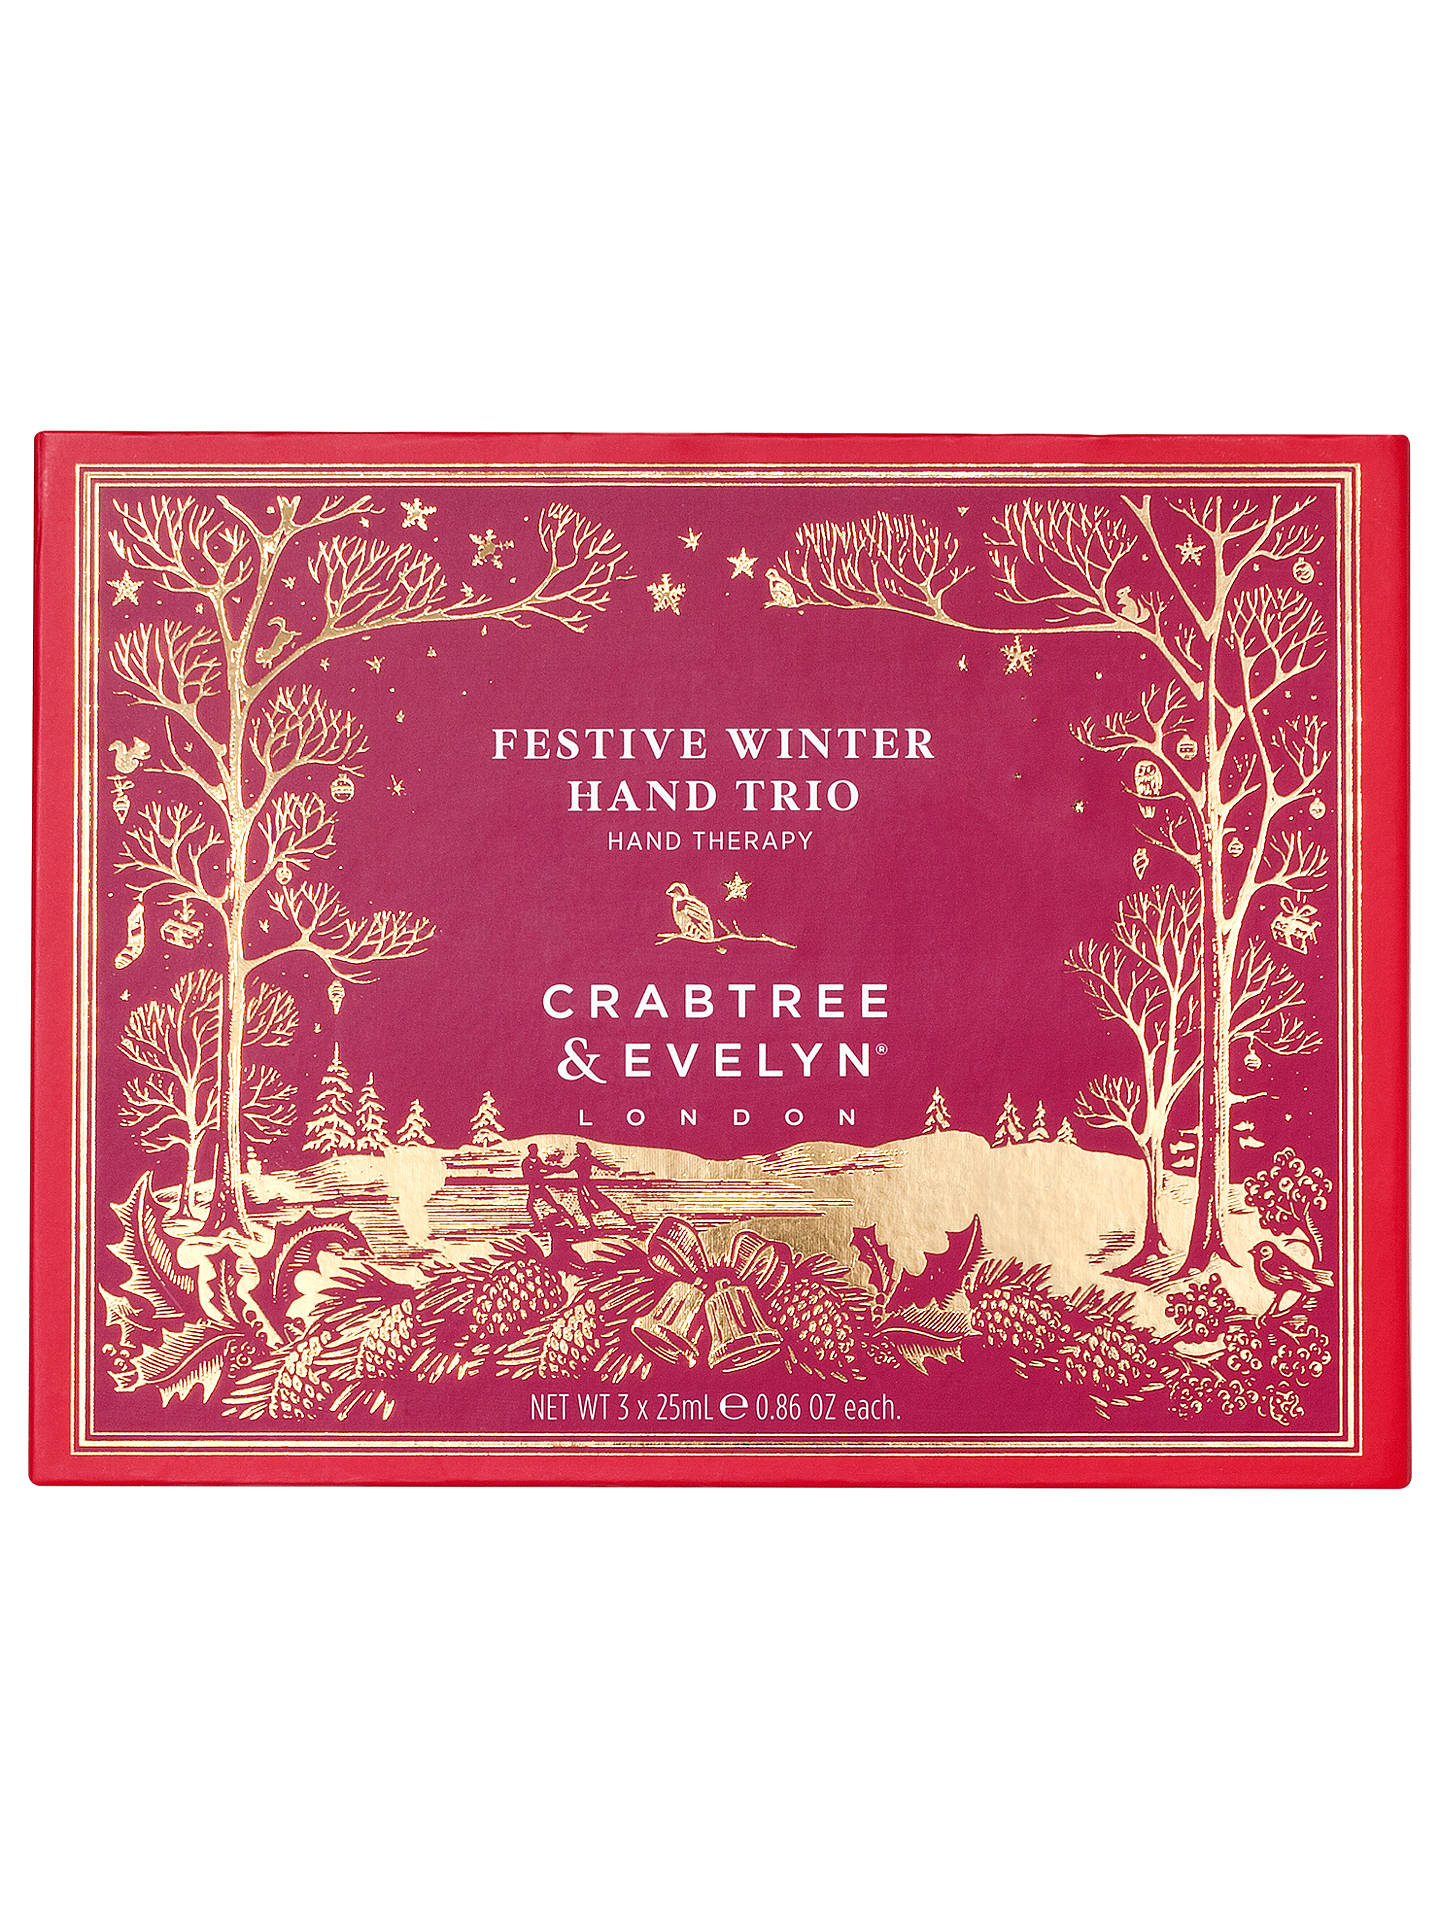 67ee5ebccf60 ... Buy Crabtree & Evelyn Festive Winter Handy Therapy Hand Trio Online at  johnlewis. ...